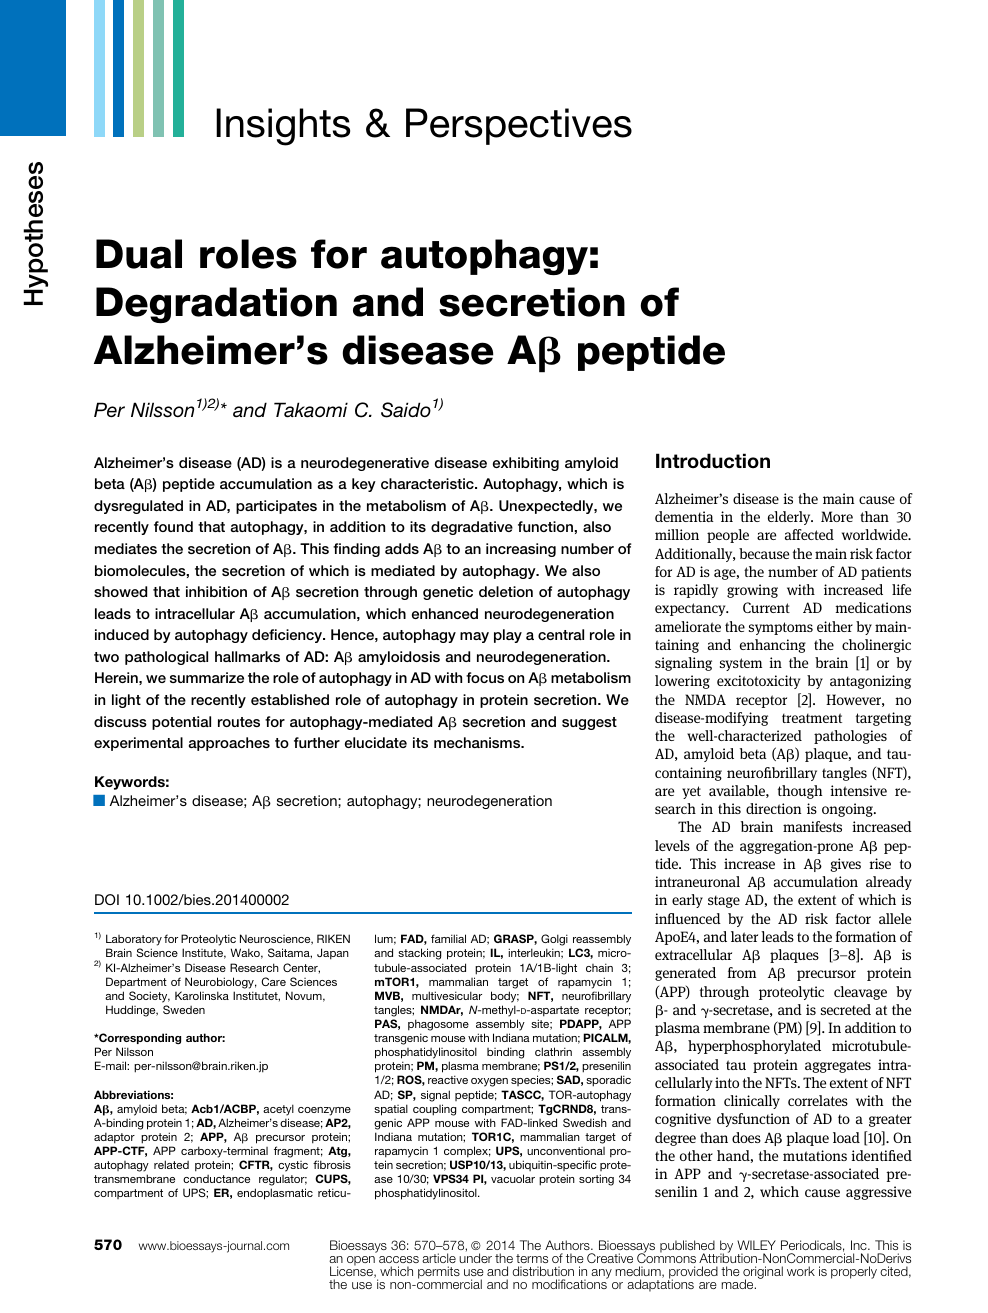 Dual Roles For Autophagy Degradation And Secretion Of Alzheimer S